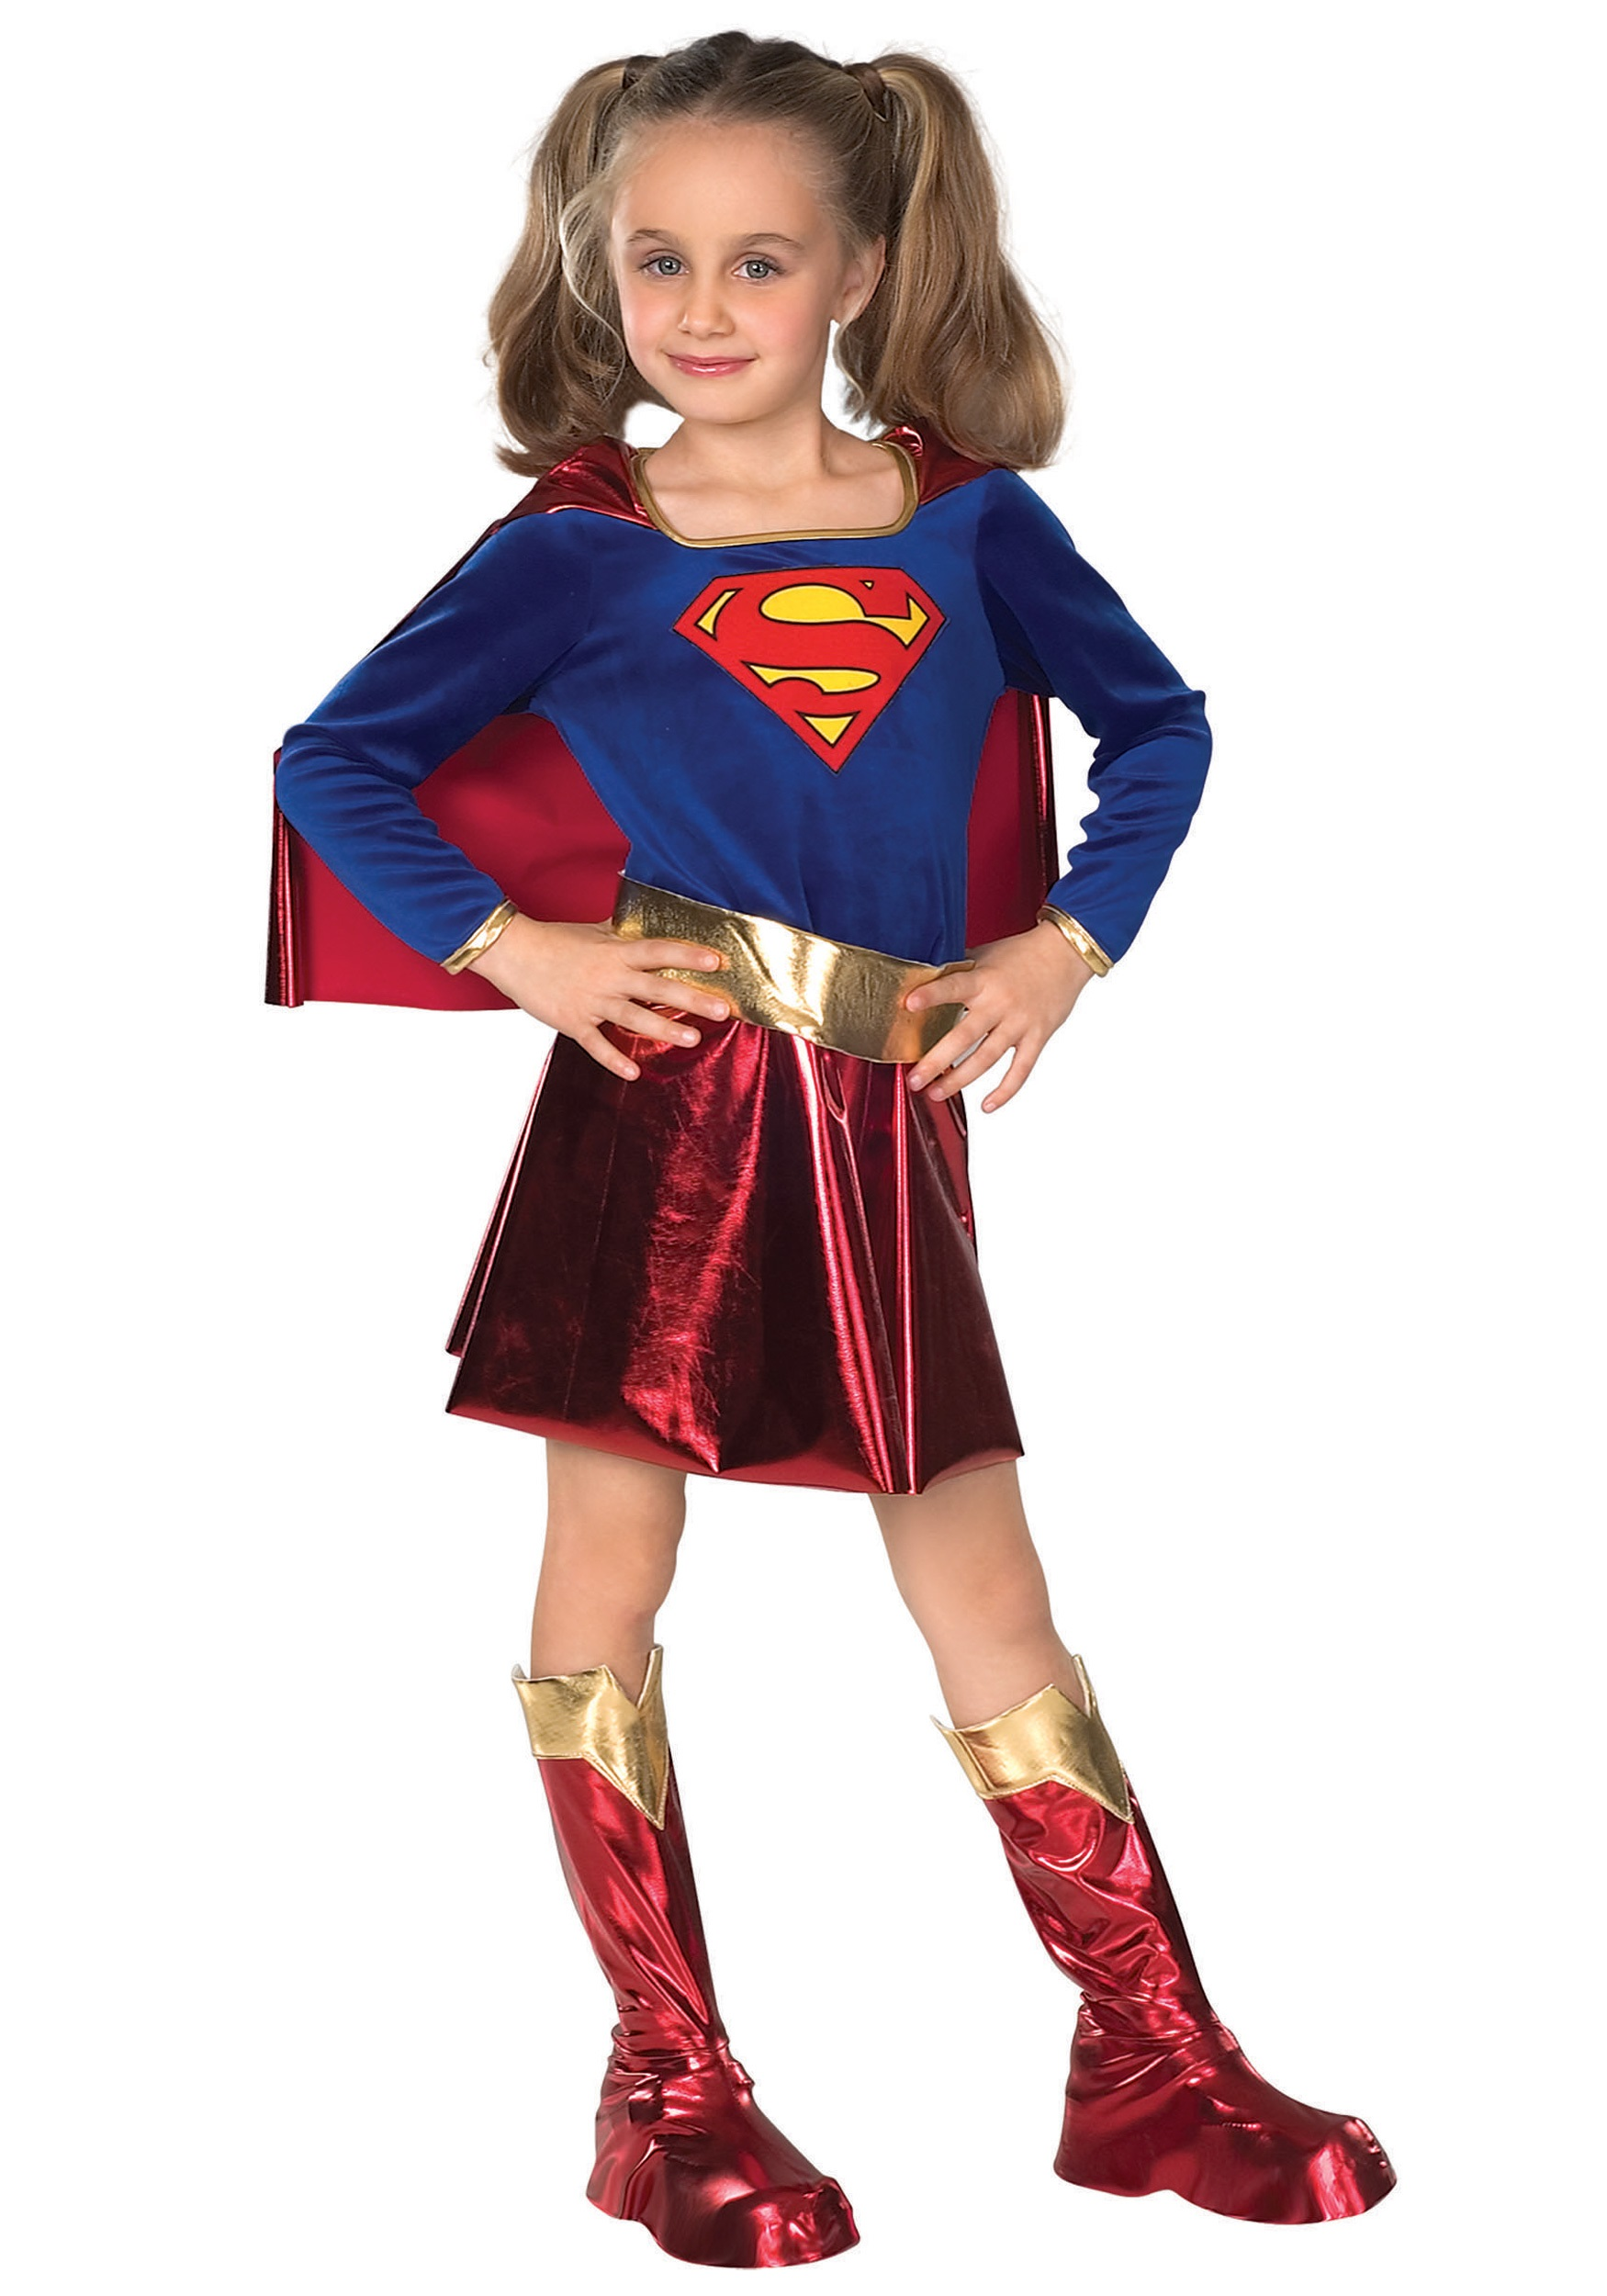 Kids Supergirl Costume  sc 1 st  Halloween Costume : childrens flash costume  - Germanpascual.Com